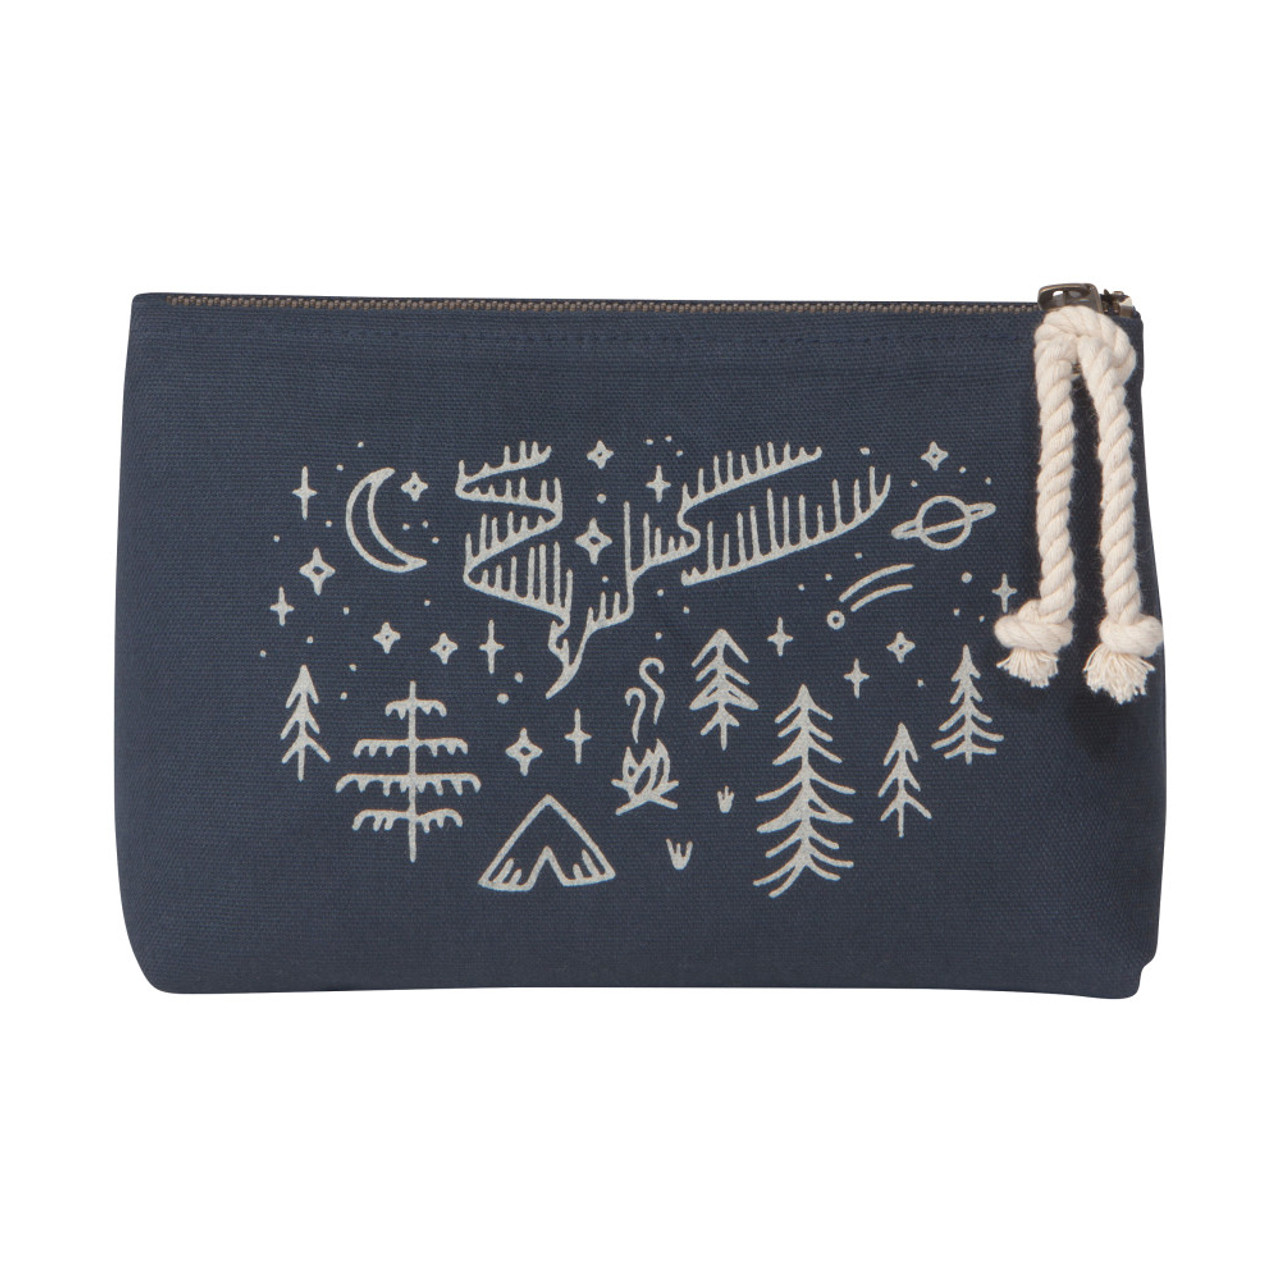 COSMETIC BAG SMALL - STAY WILD